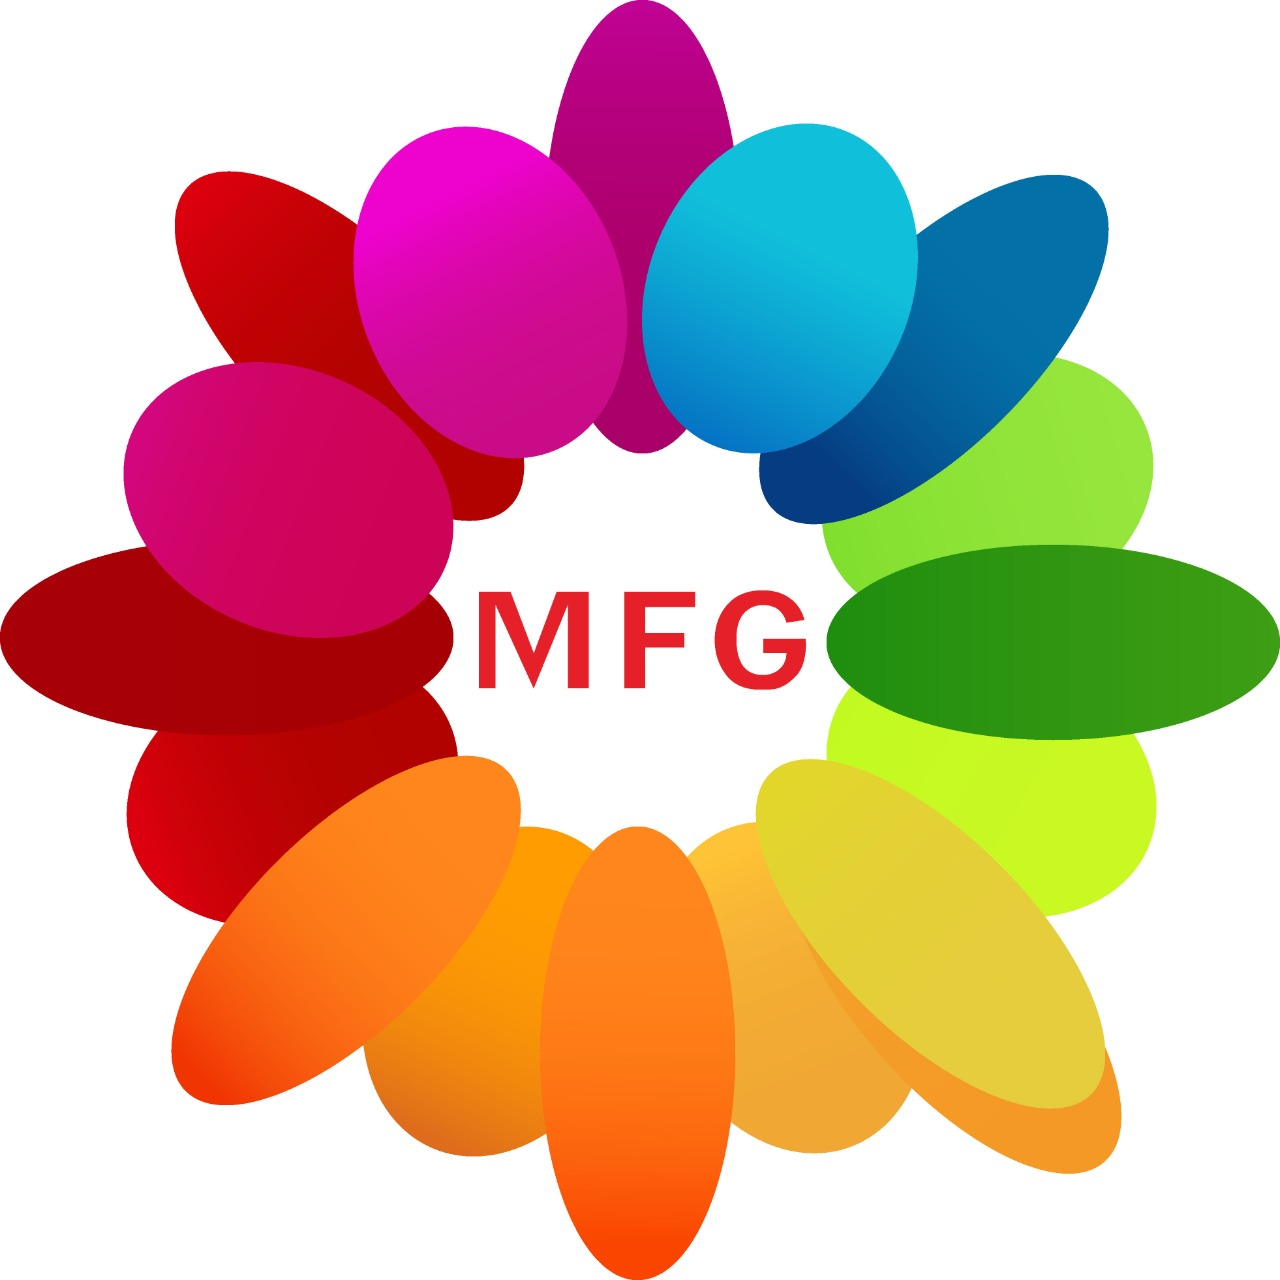 3 Tier Vanilla Cake of 6 kg with Beautiful floral Topping